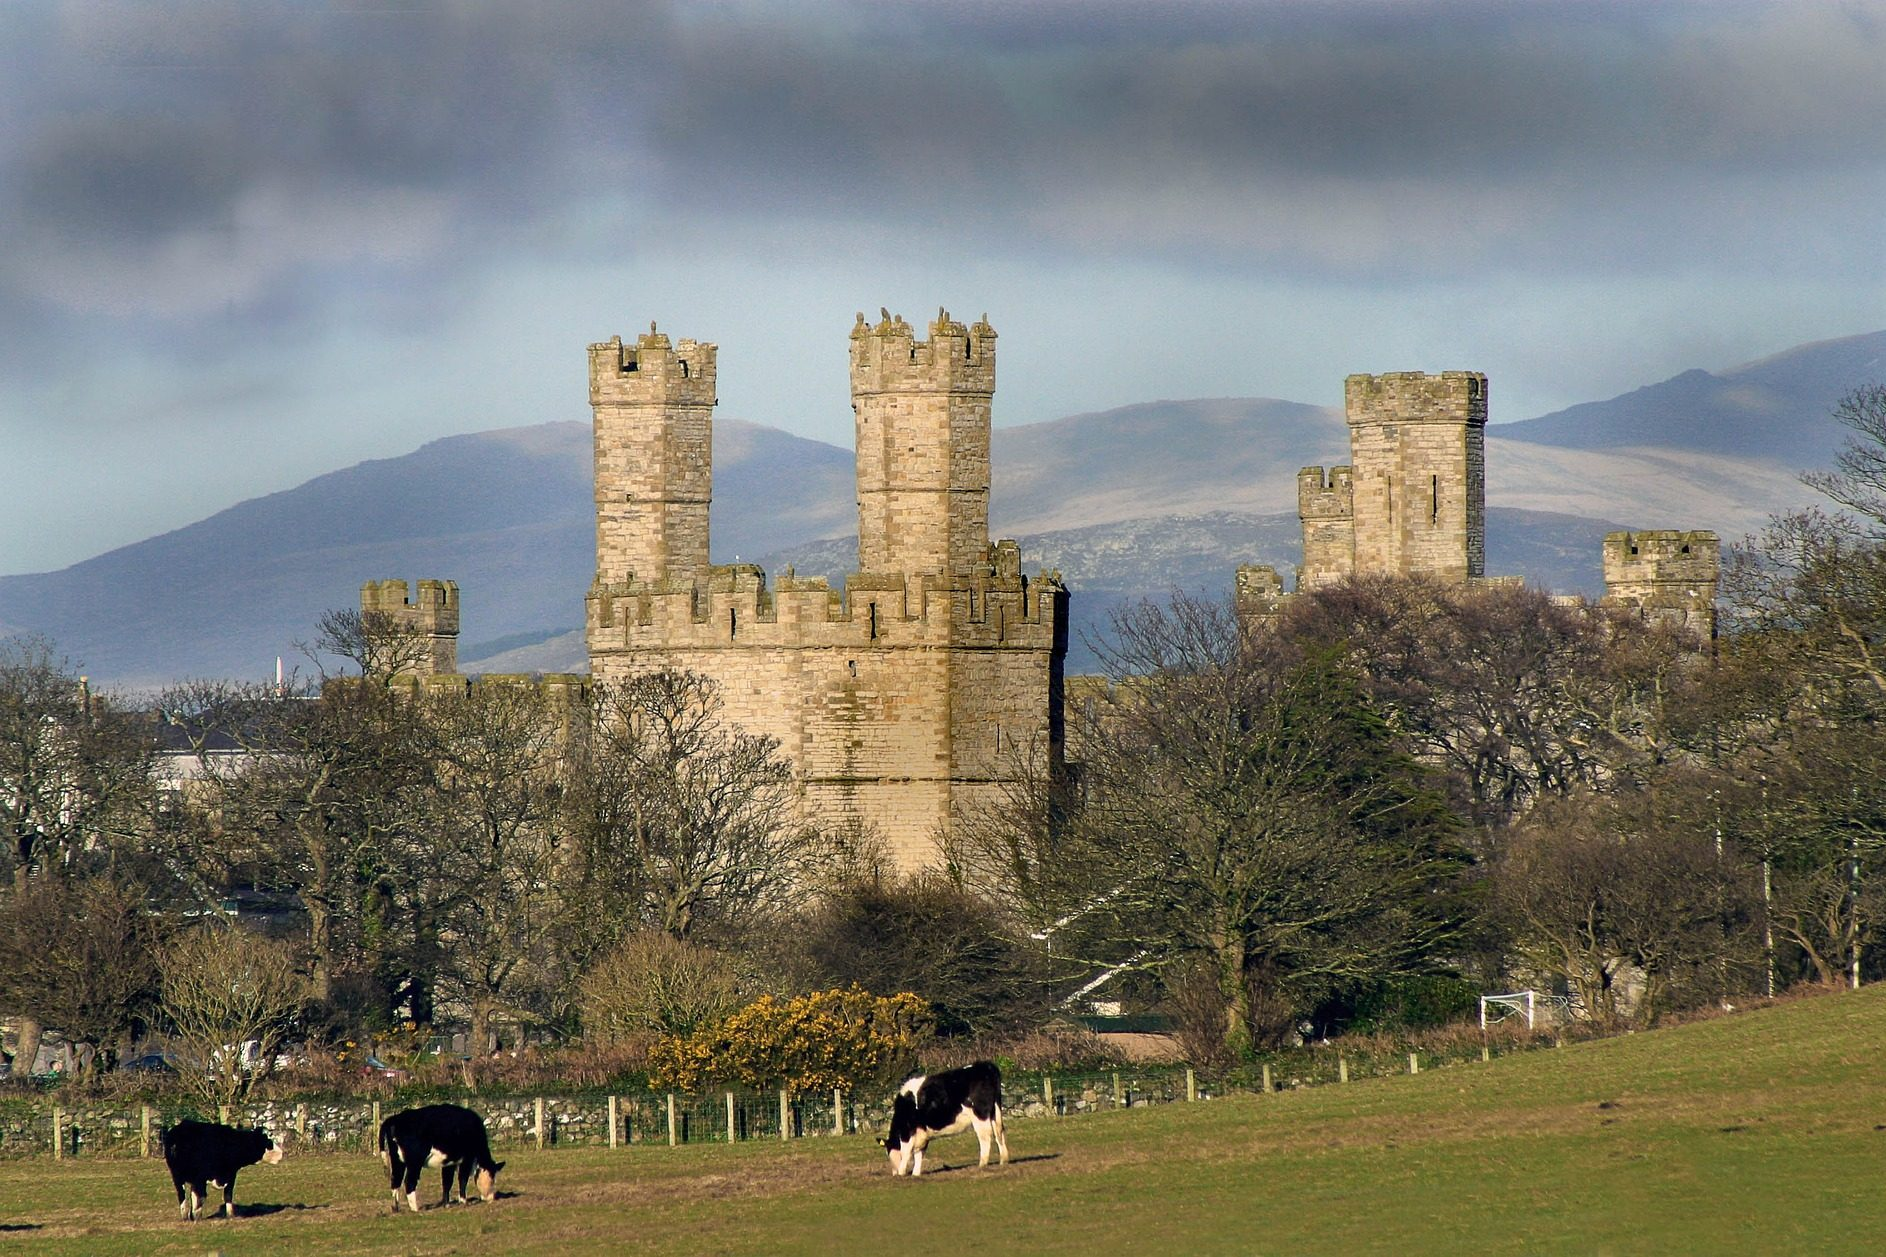 Caernarfon Hotels, Inns, Restaurants, B&Bs | Visitor Information